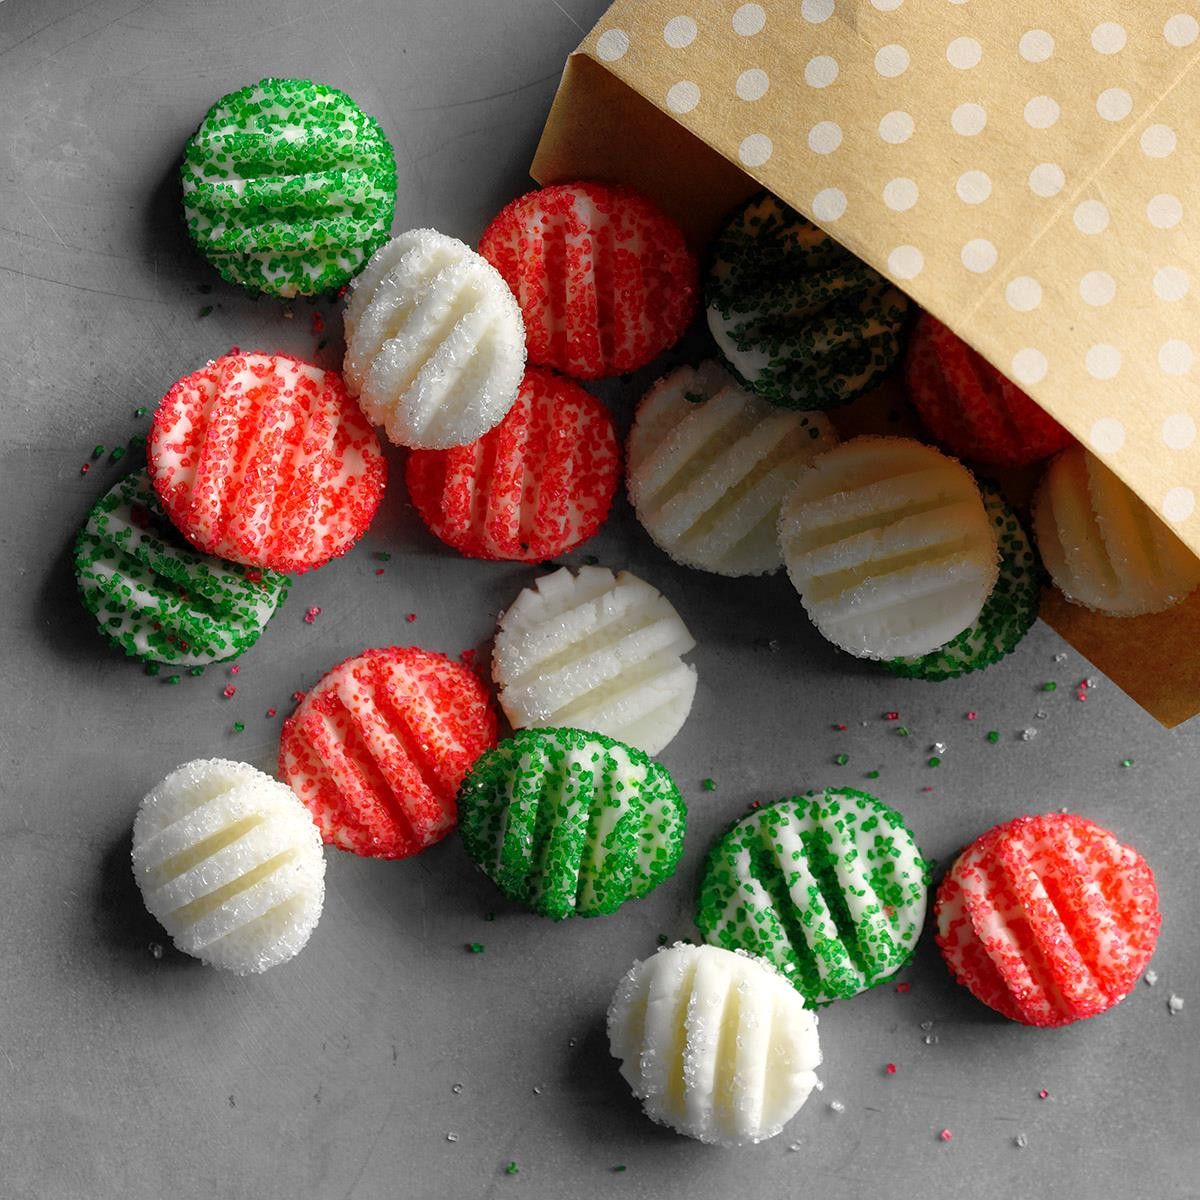 Best Christmas Candy Recipes  Top 10 Homemade Christmas Candy Recipes